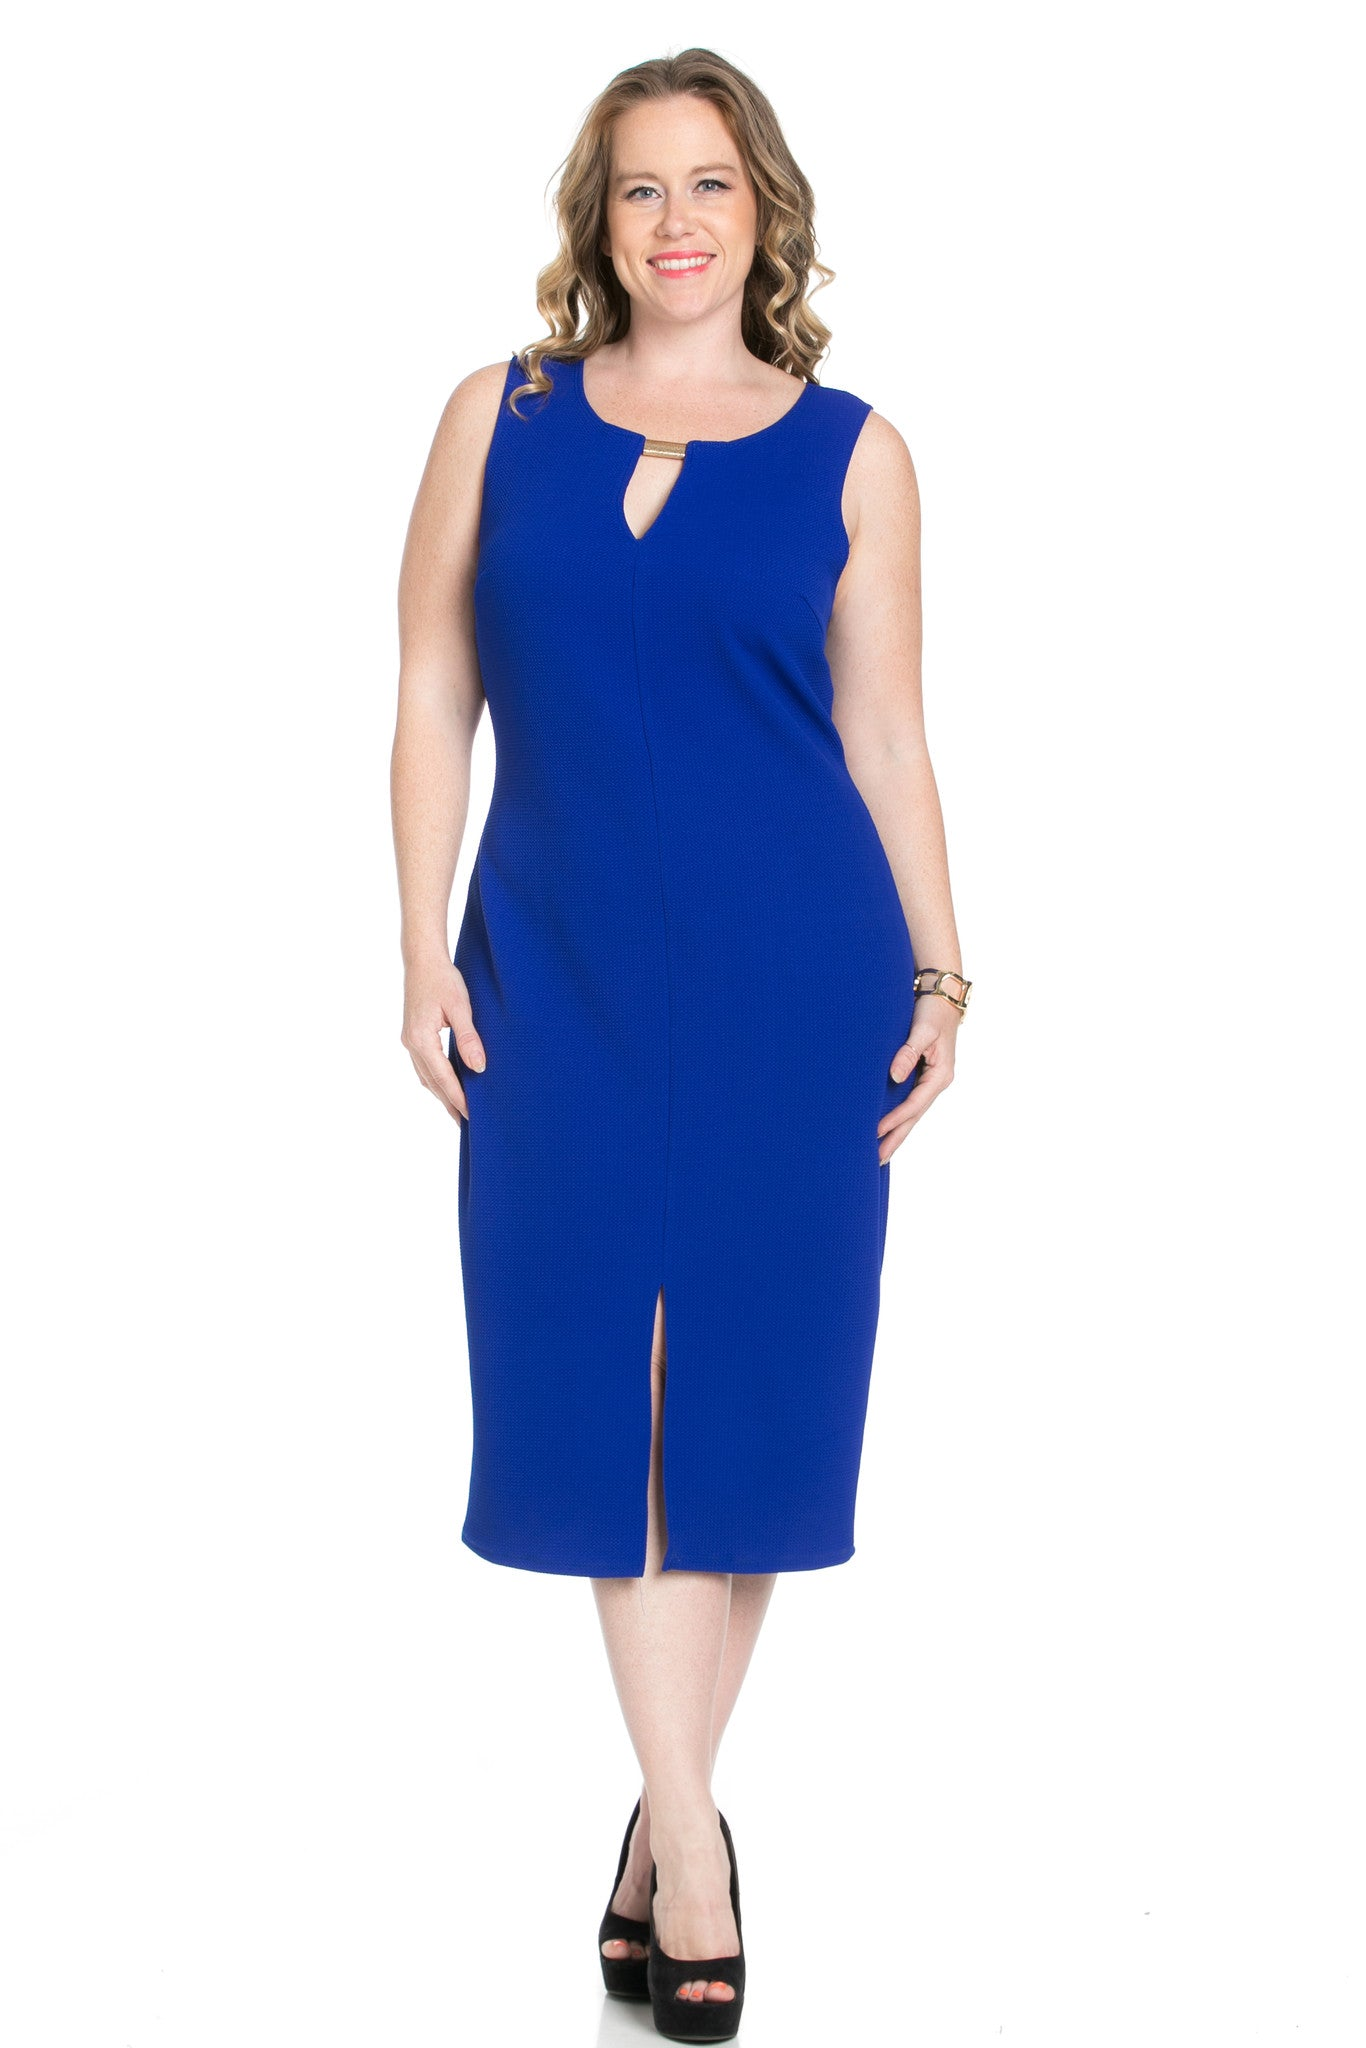 Royal Blue Modest a Bit with Bare Shoulders Dress - Dresses - My Yuccie - 5